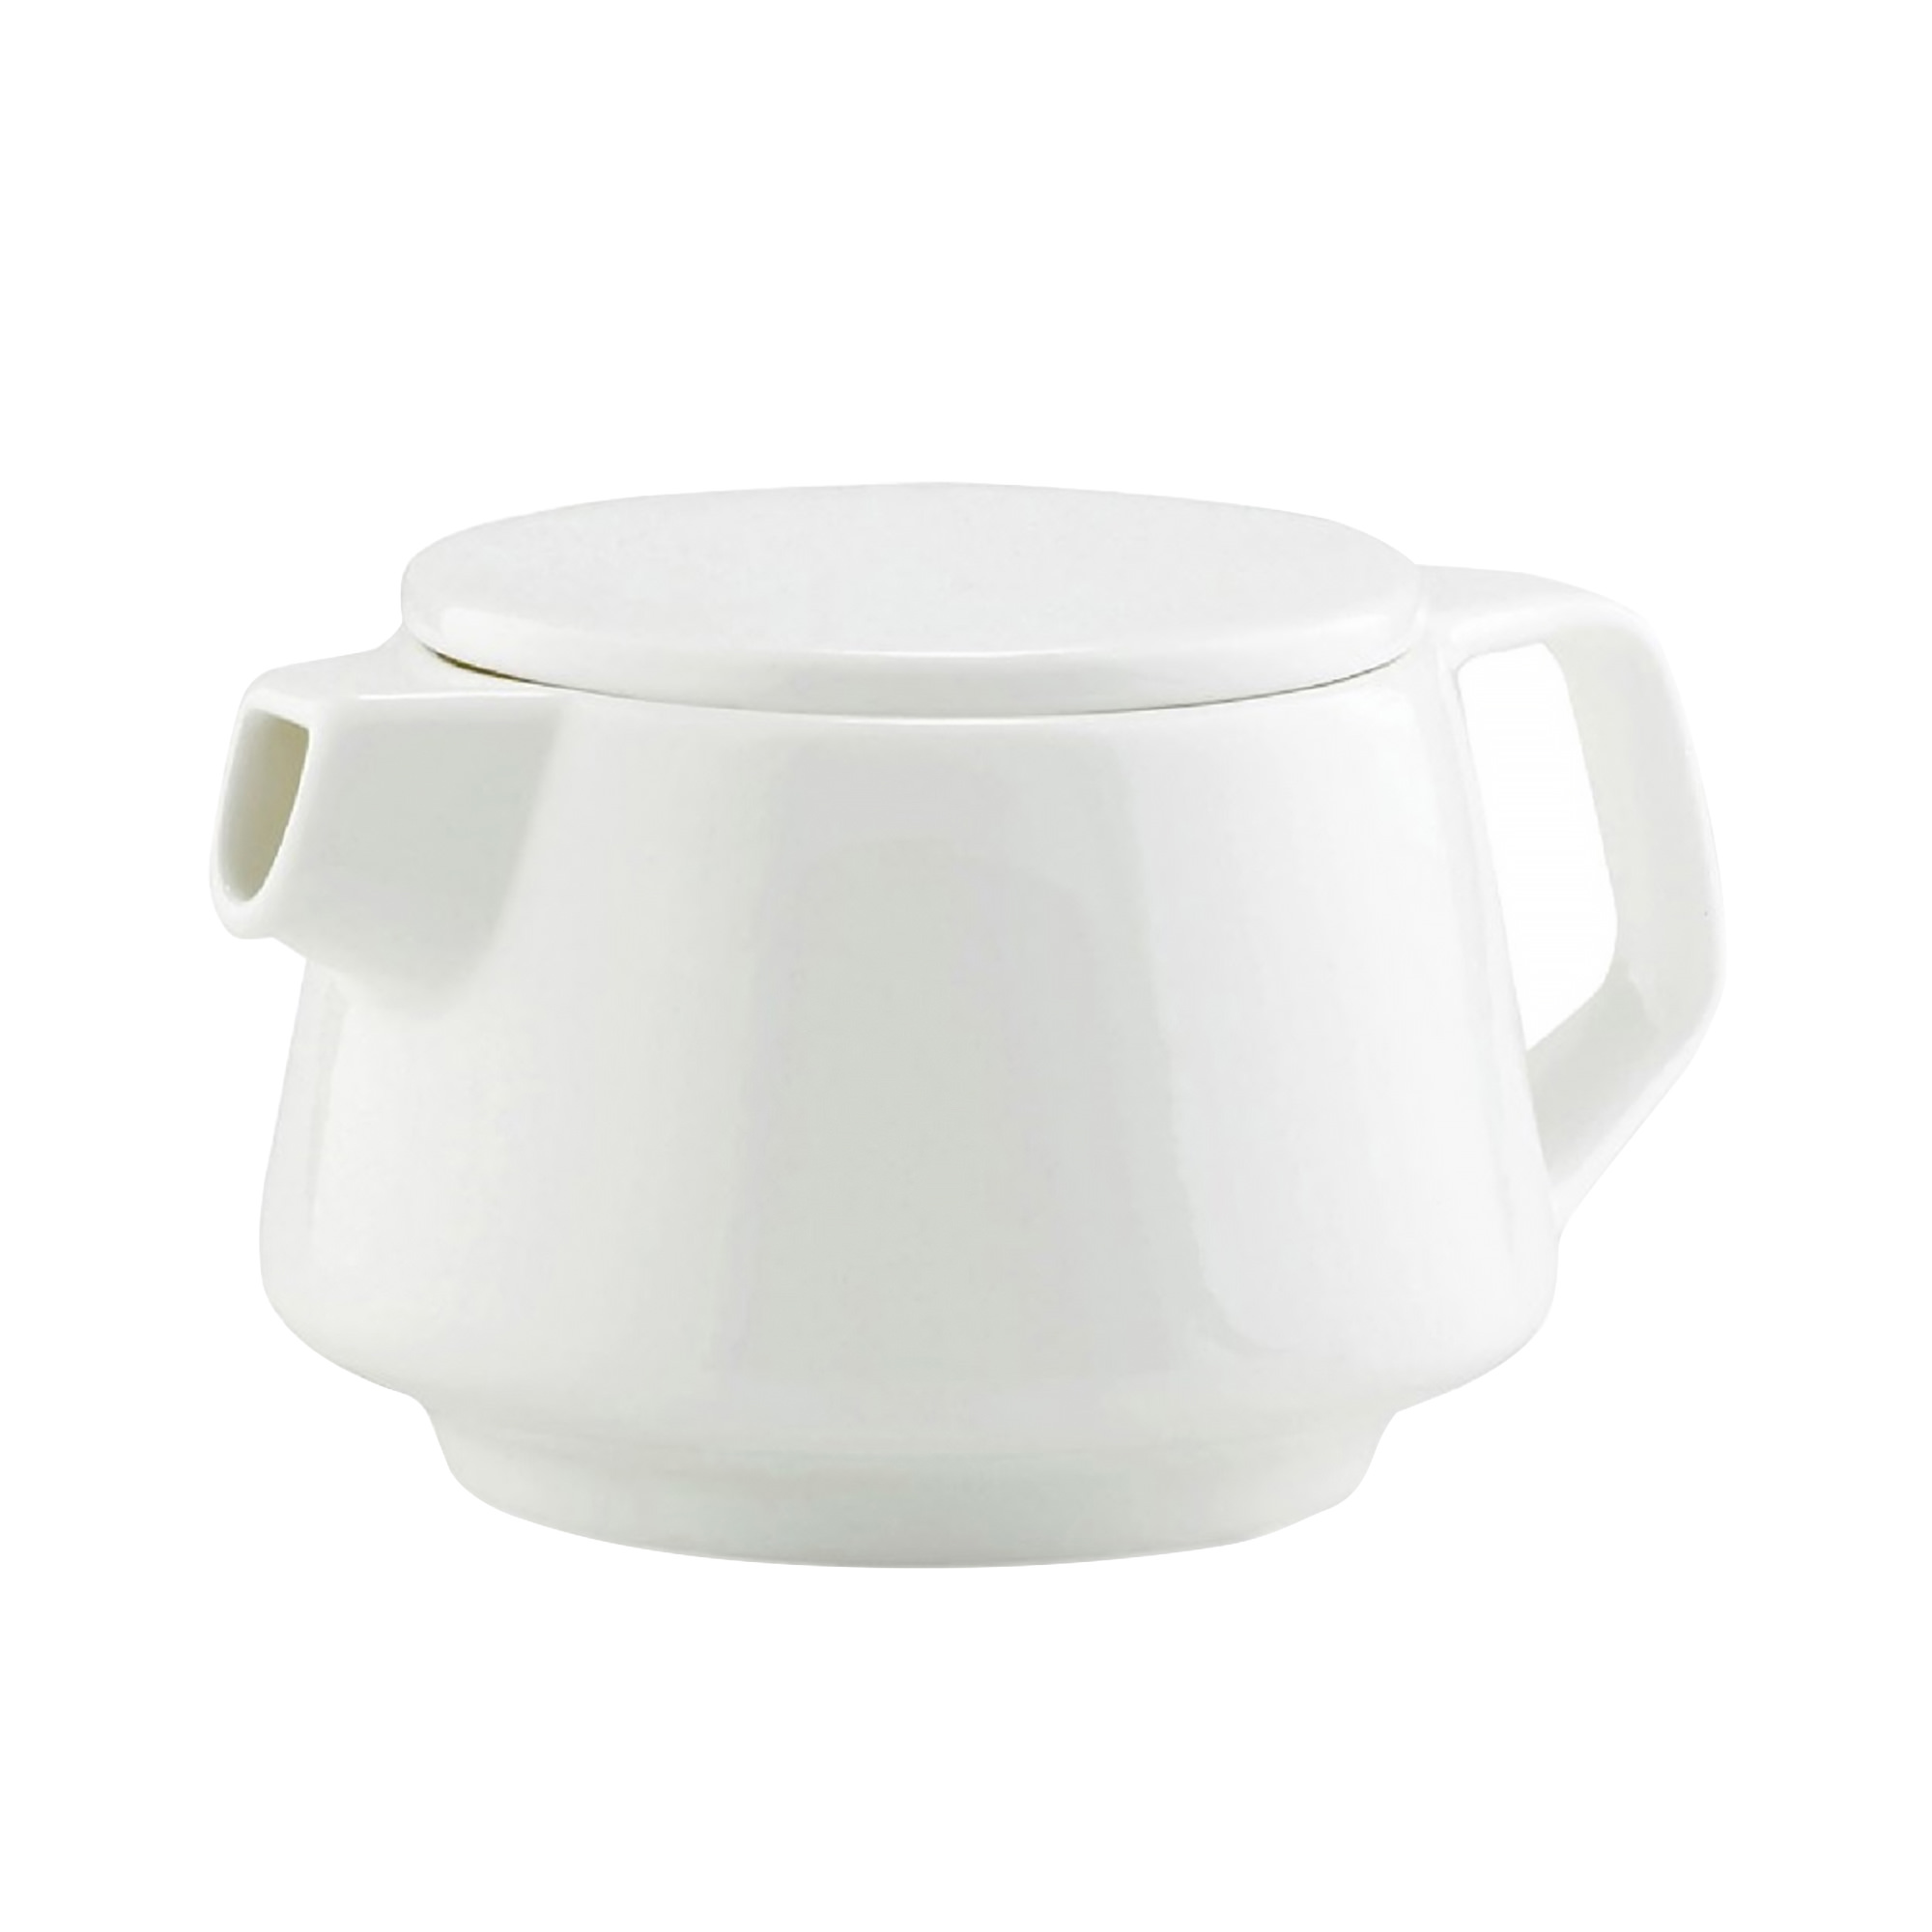 Noritake Marc Newson 2 Person Tea Pot 370ml White